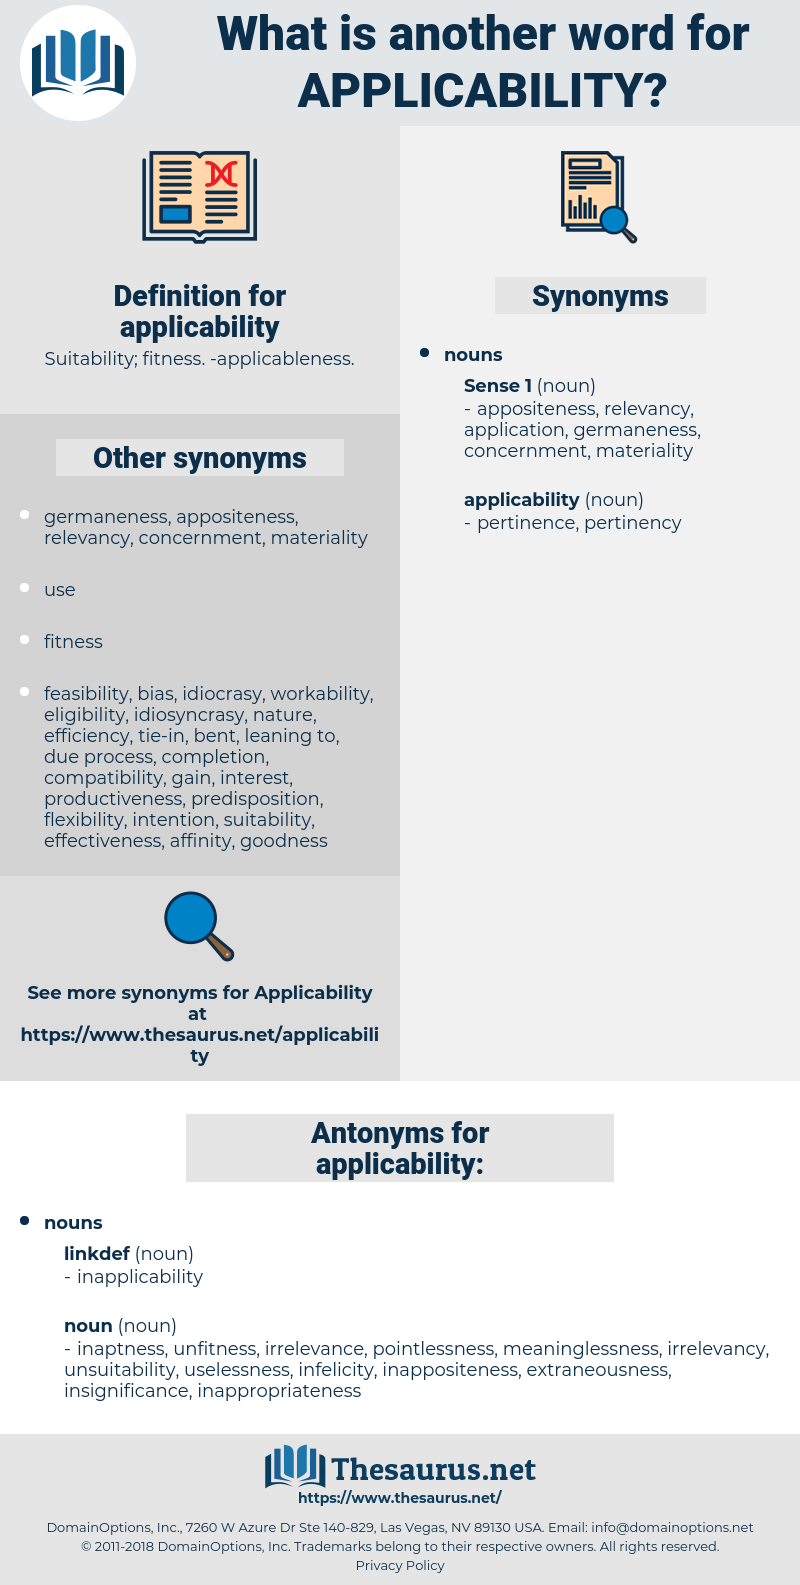 applicability, synonym applicability, another word for applicability, words like applicability, thesaurus applicability